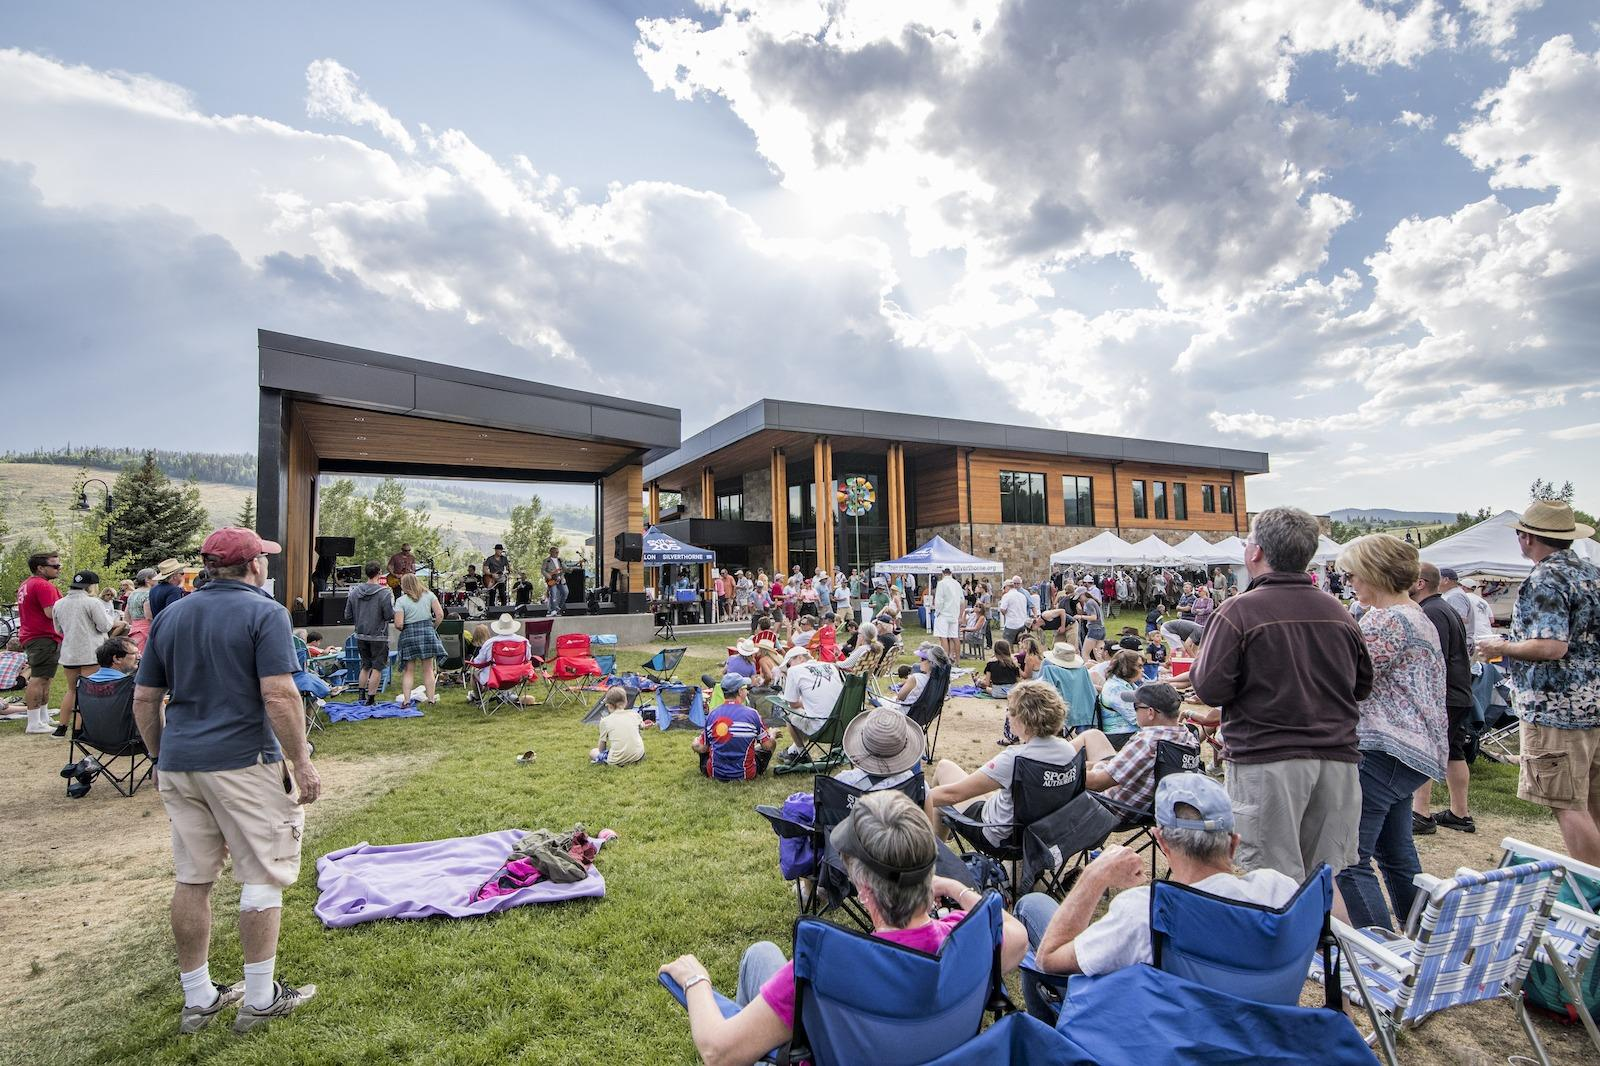 concert in Silverthorne, CO